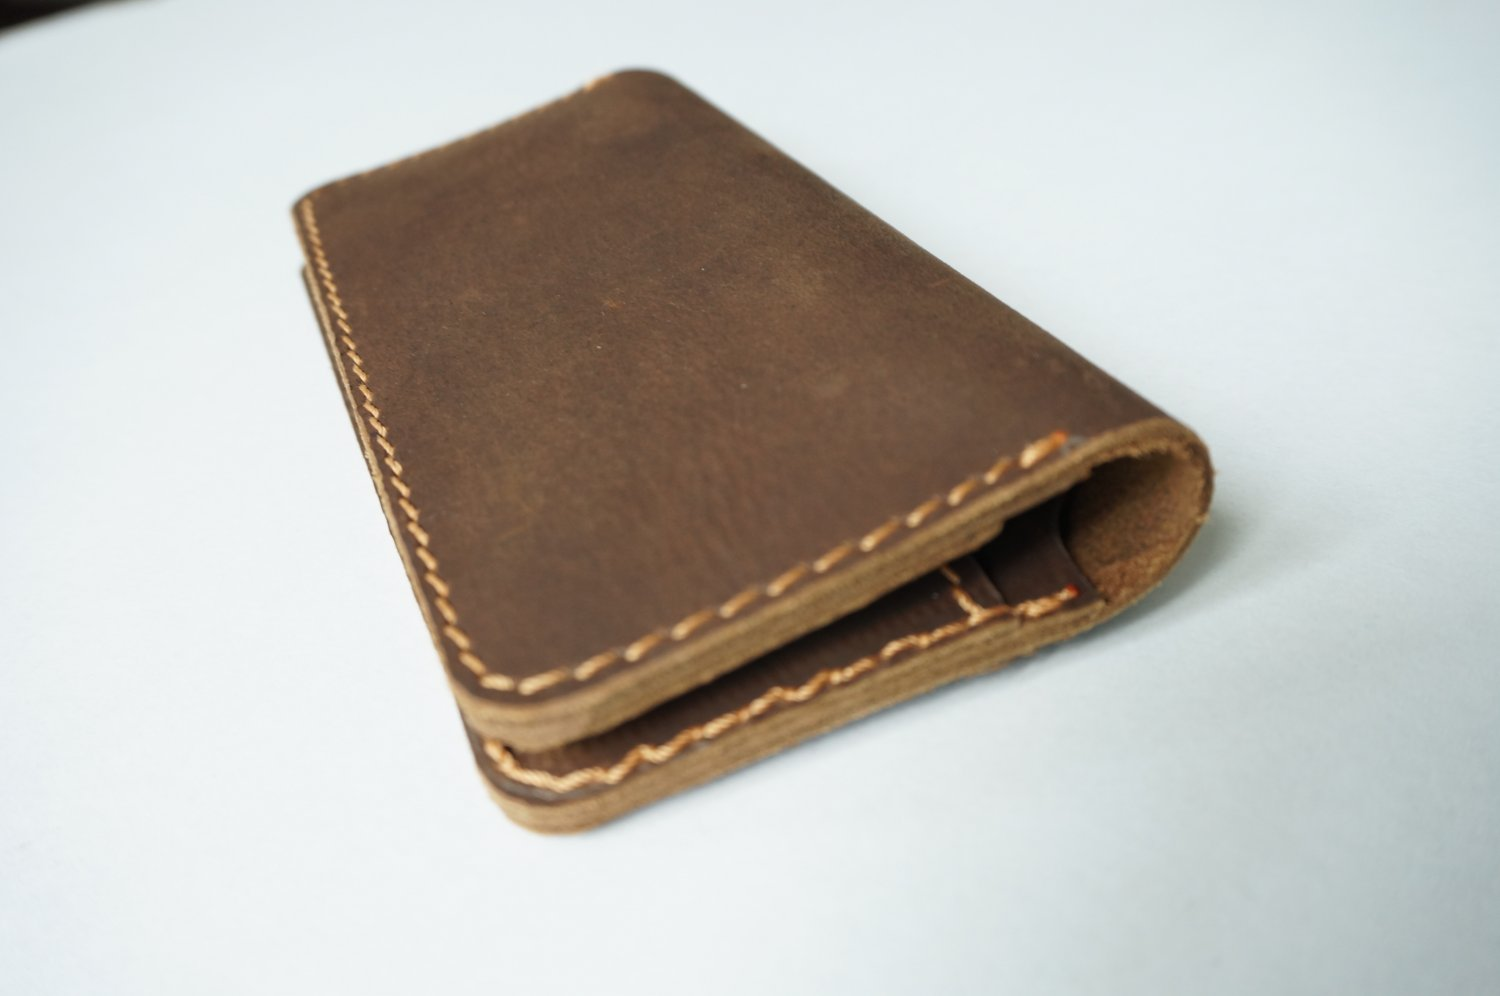 Retro Unisex Leather Wallet Brown Model RLW1281